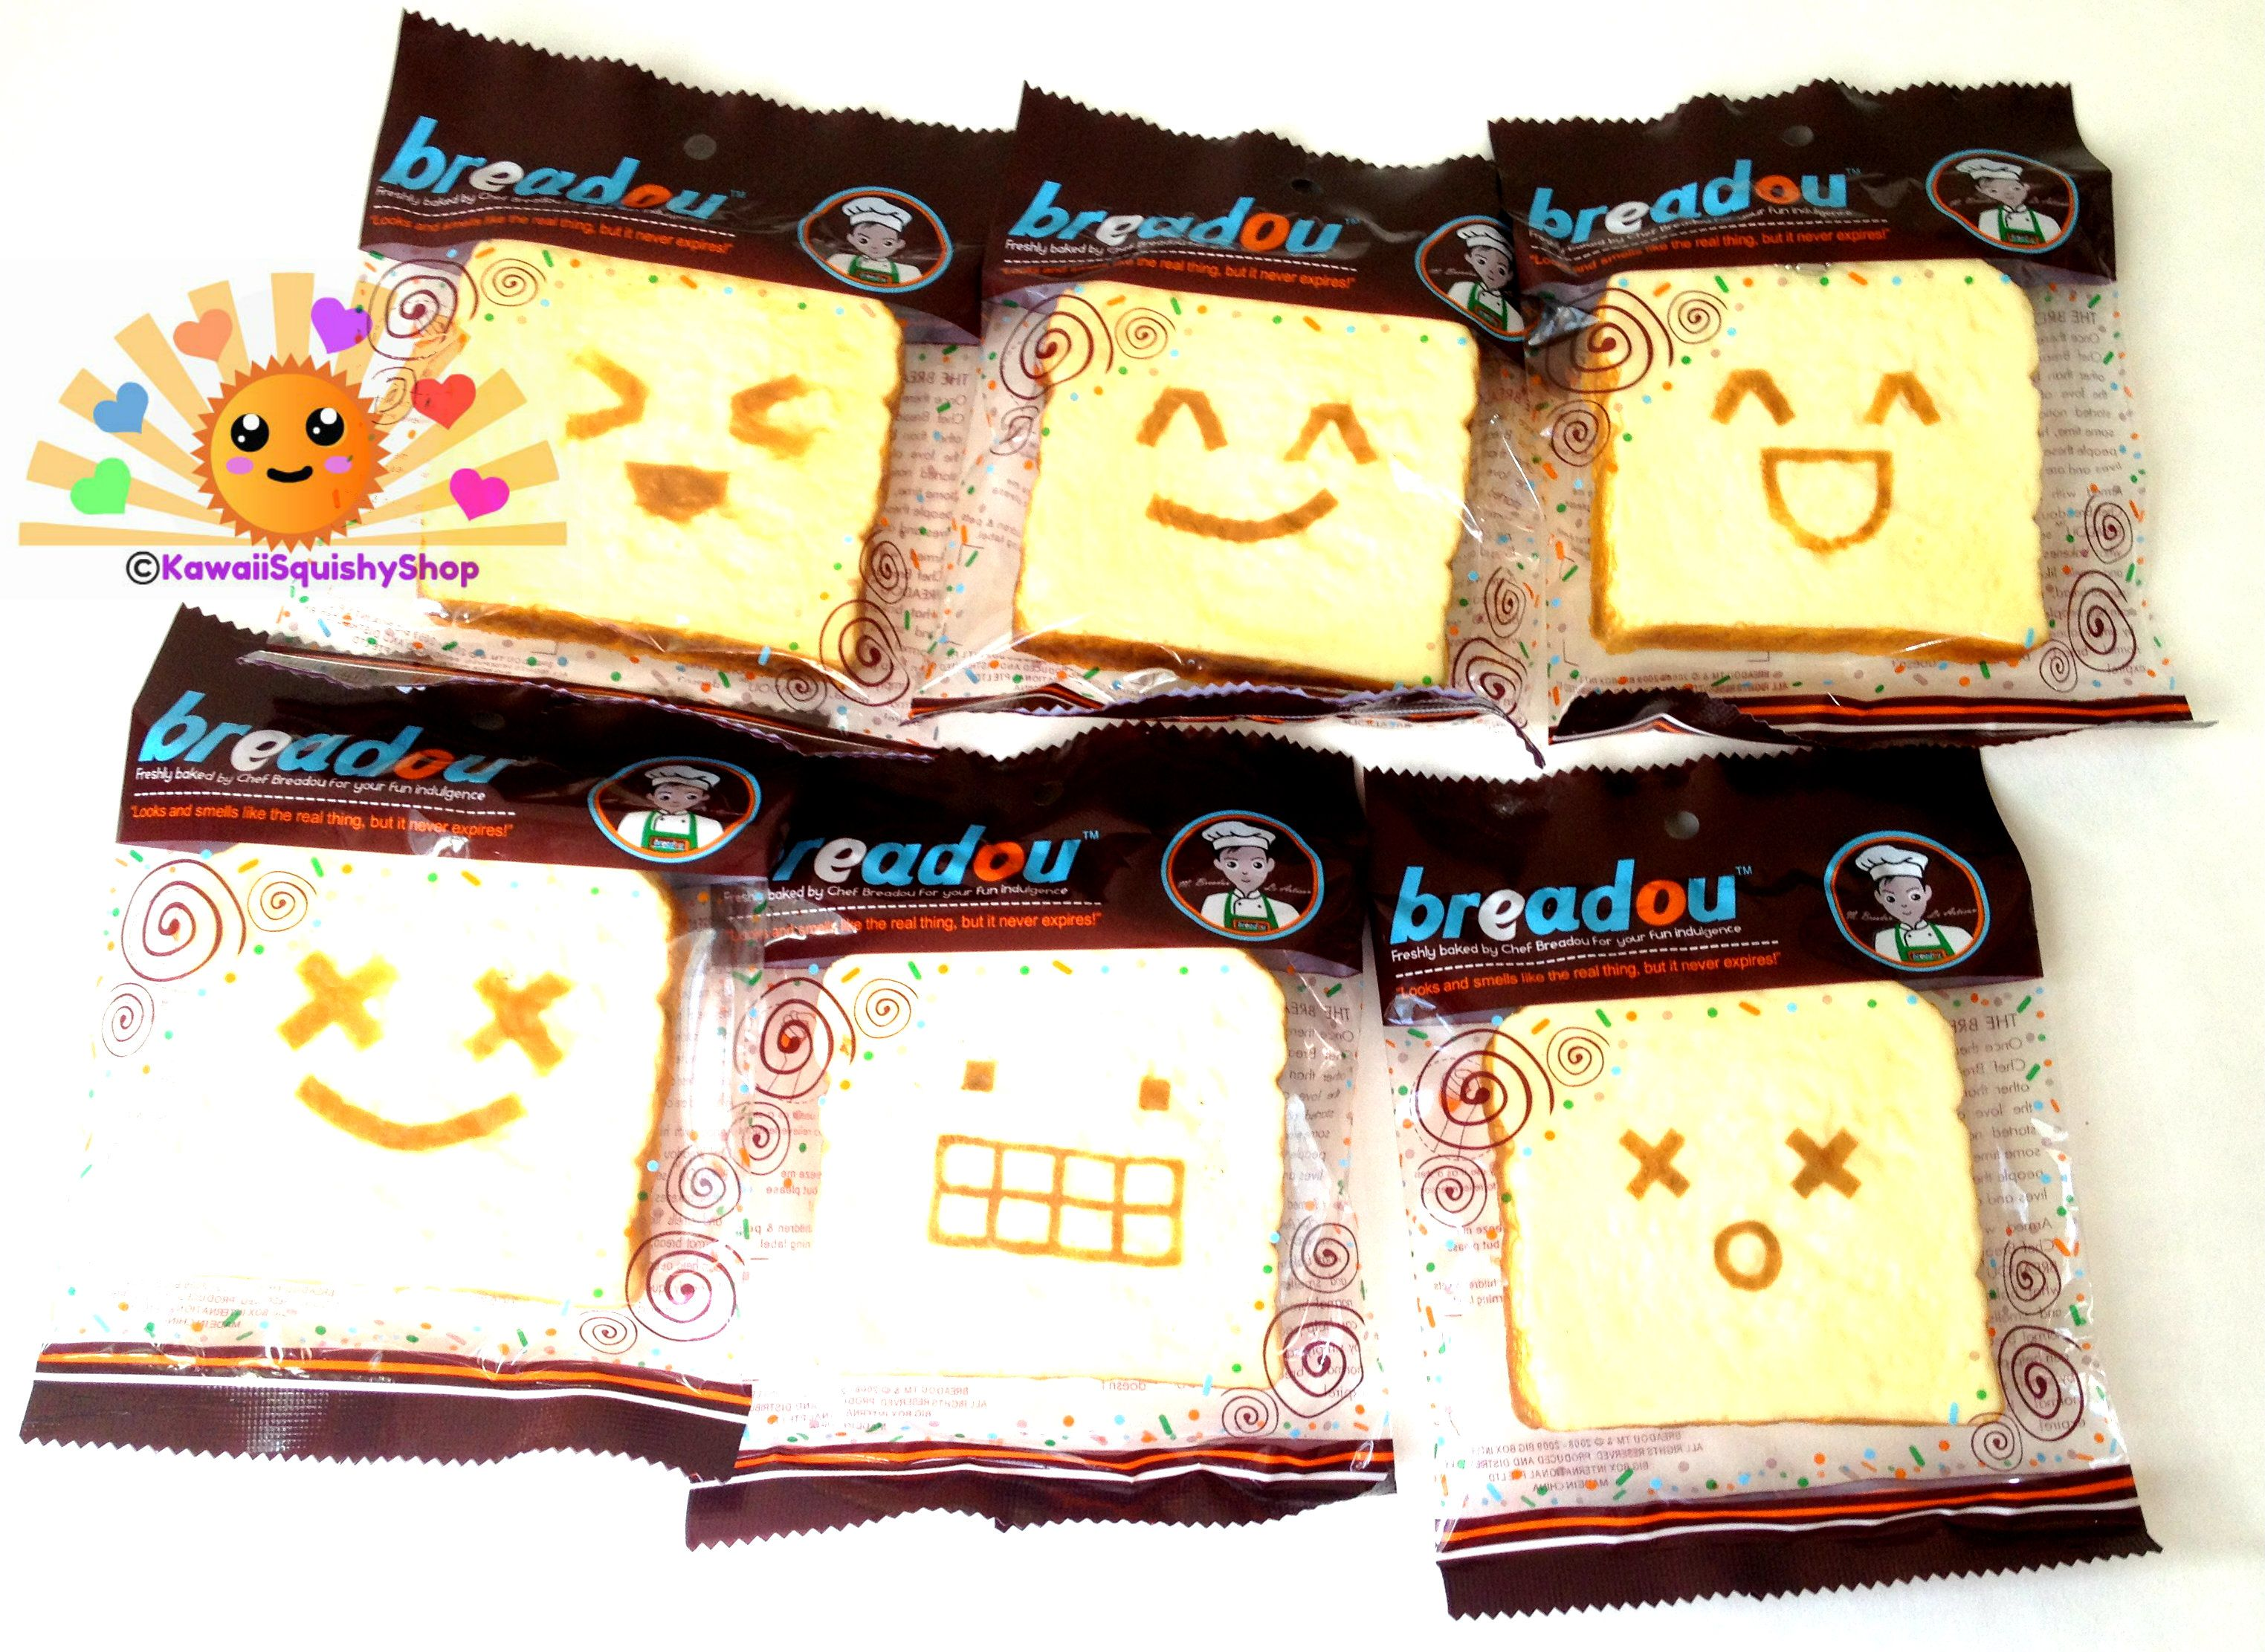 squishy breadou u00ae roti toast bread accessories keychain  so adorable and squishy  come is six